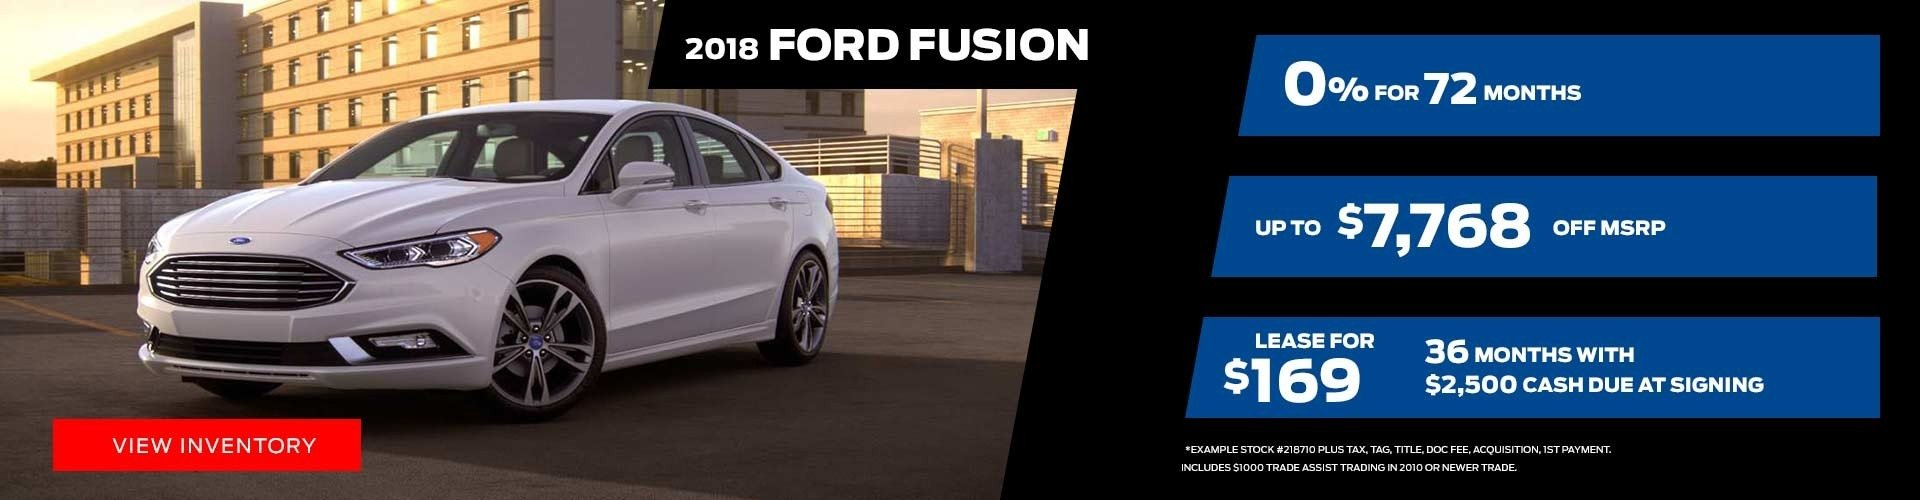 2018 Ford Fusion Special Offer